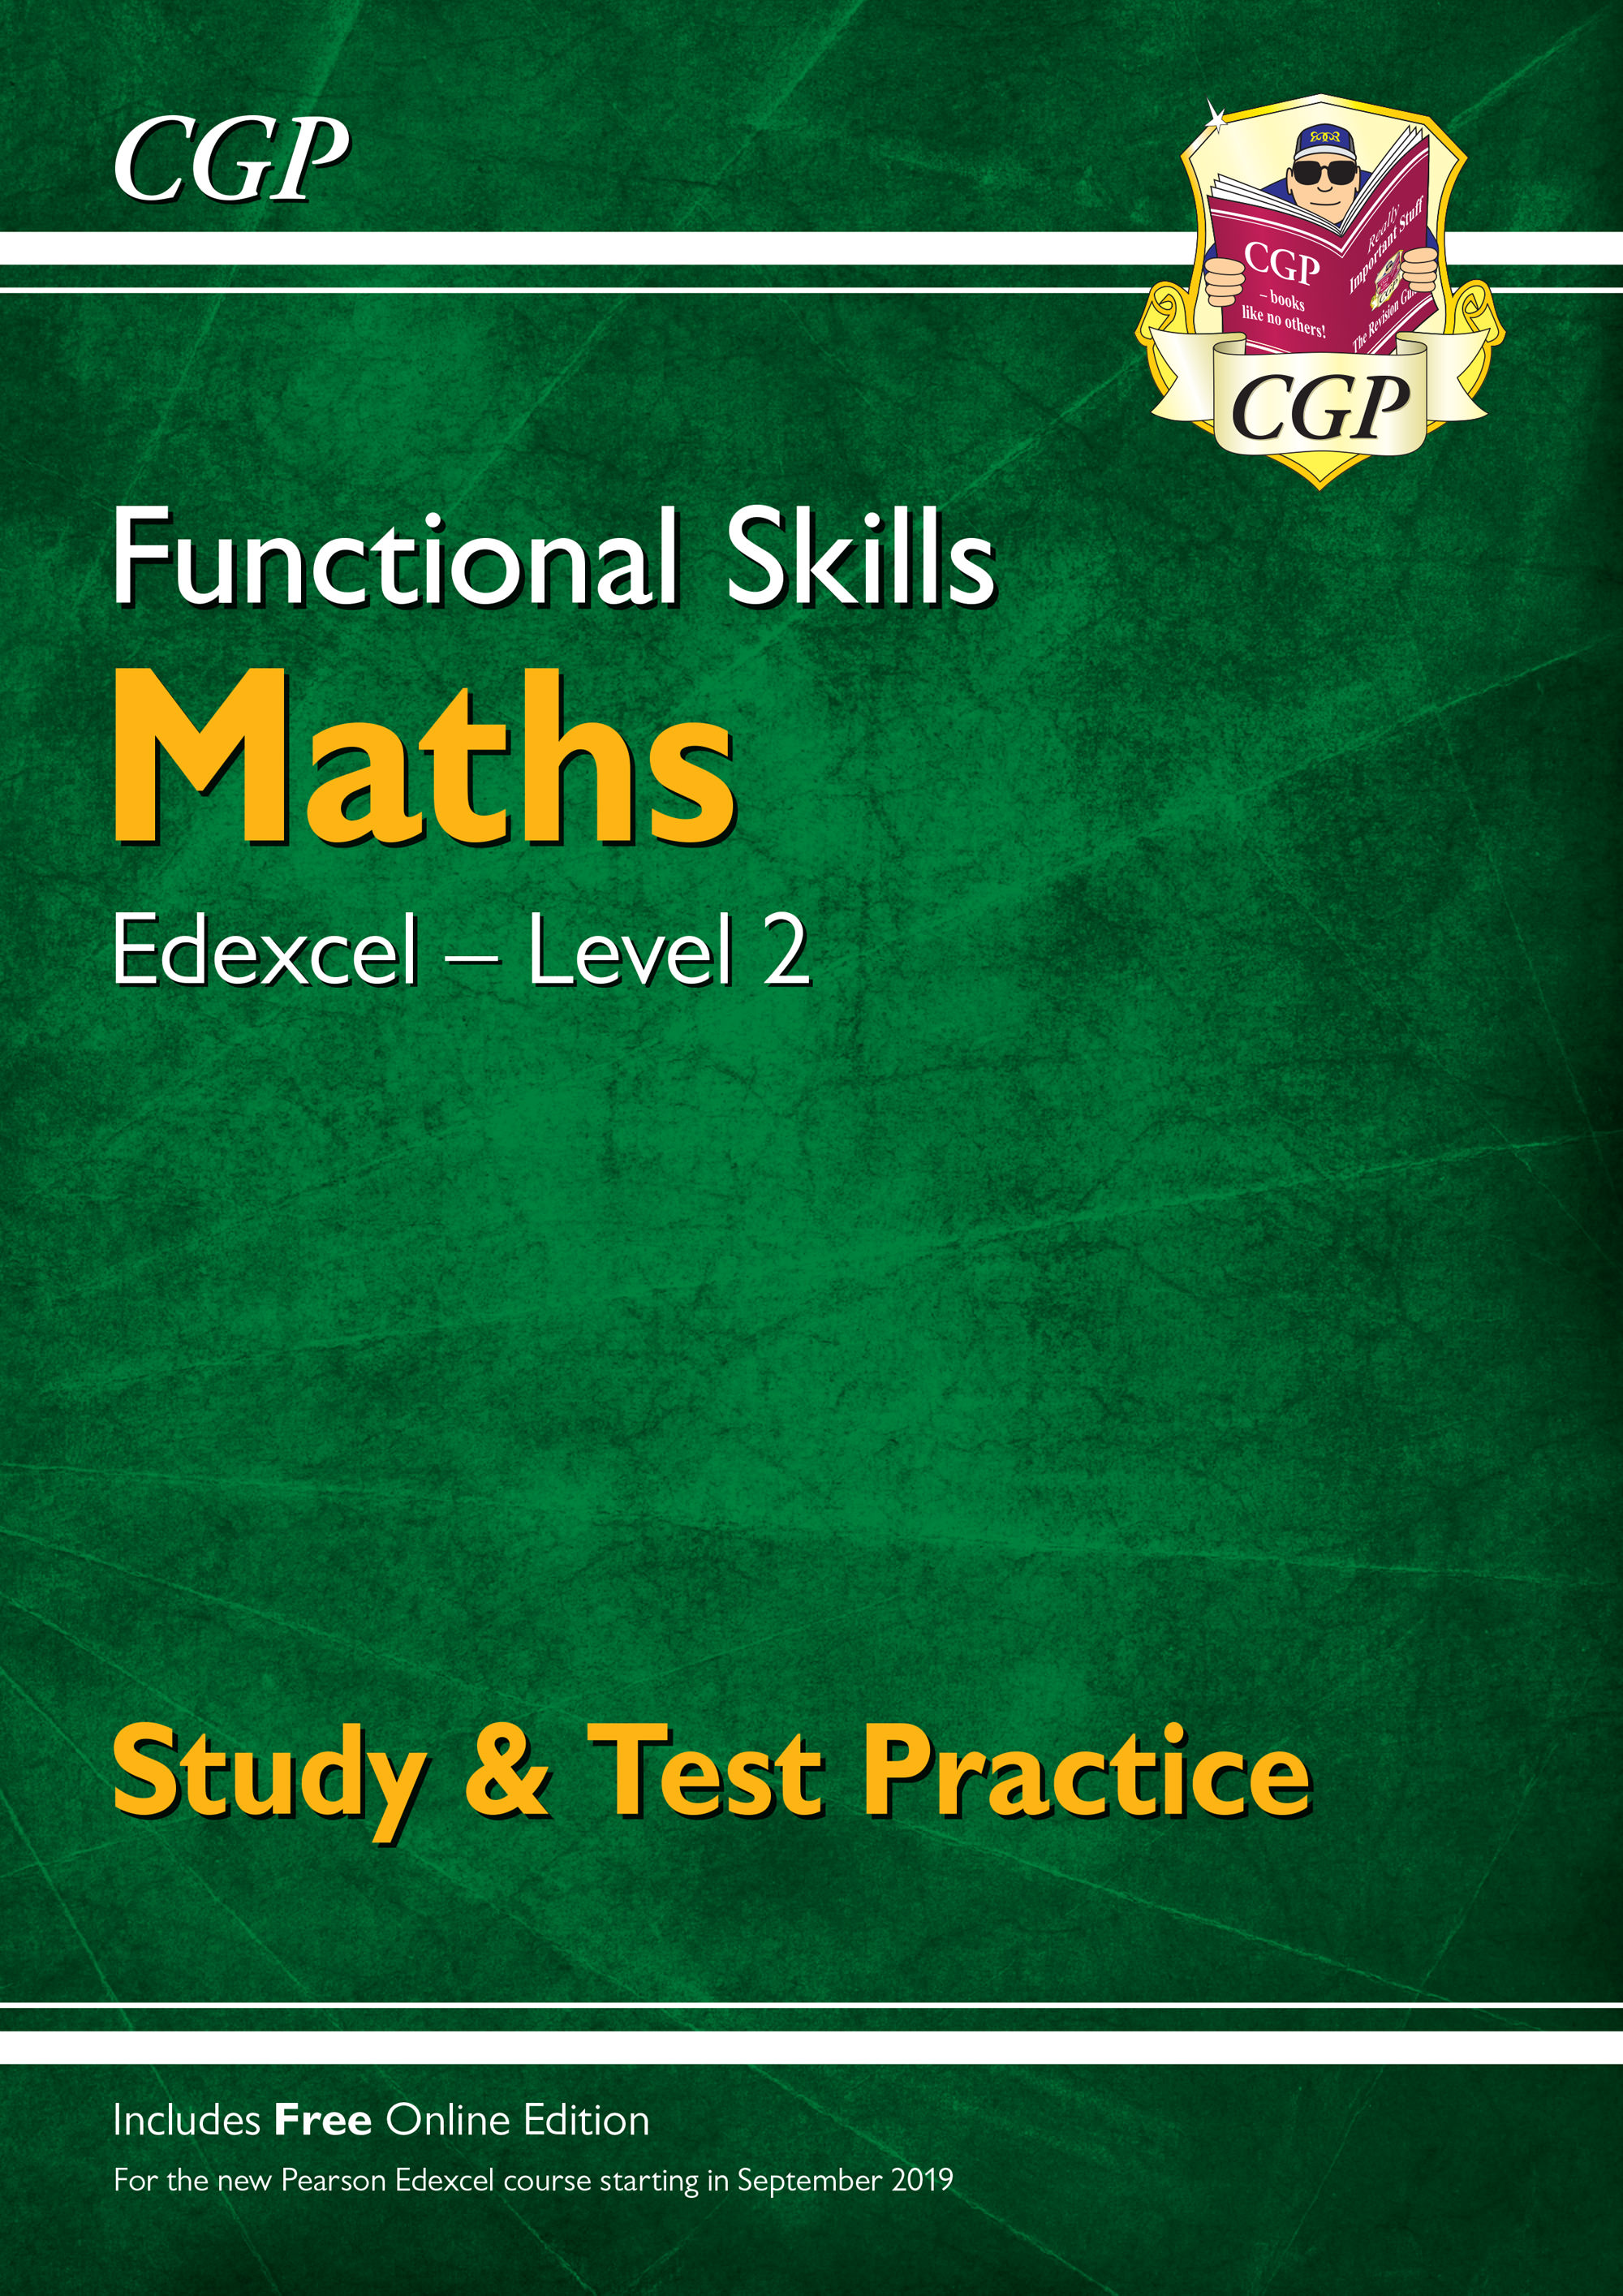 M2ESRA1 - New Functional Skills Maths: Edexcel Level 2 - Study & Test Practice (for 2019 & beyond)